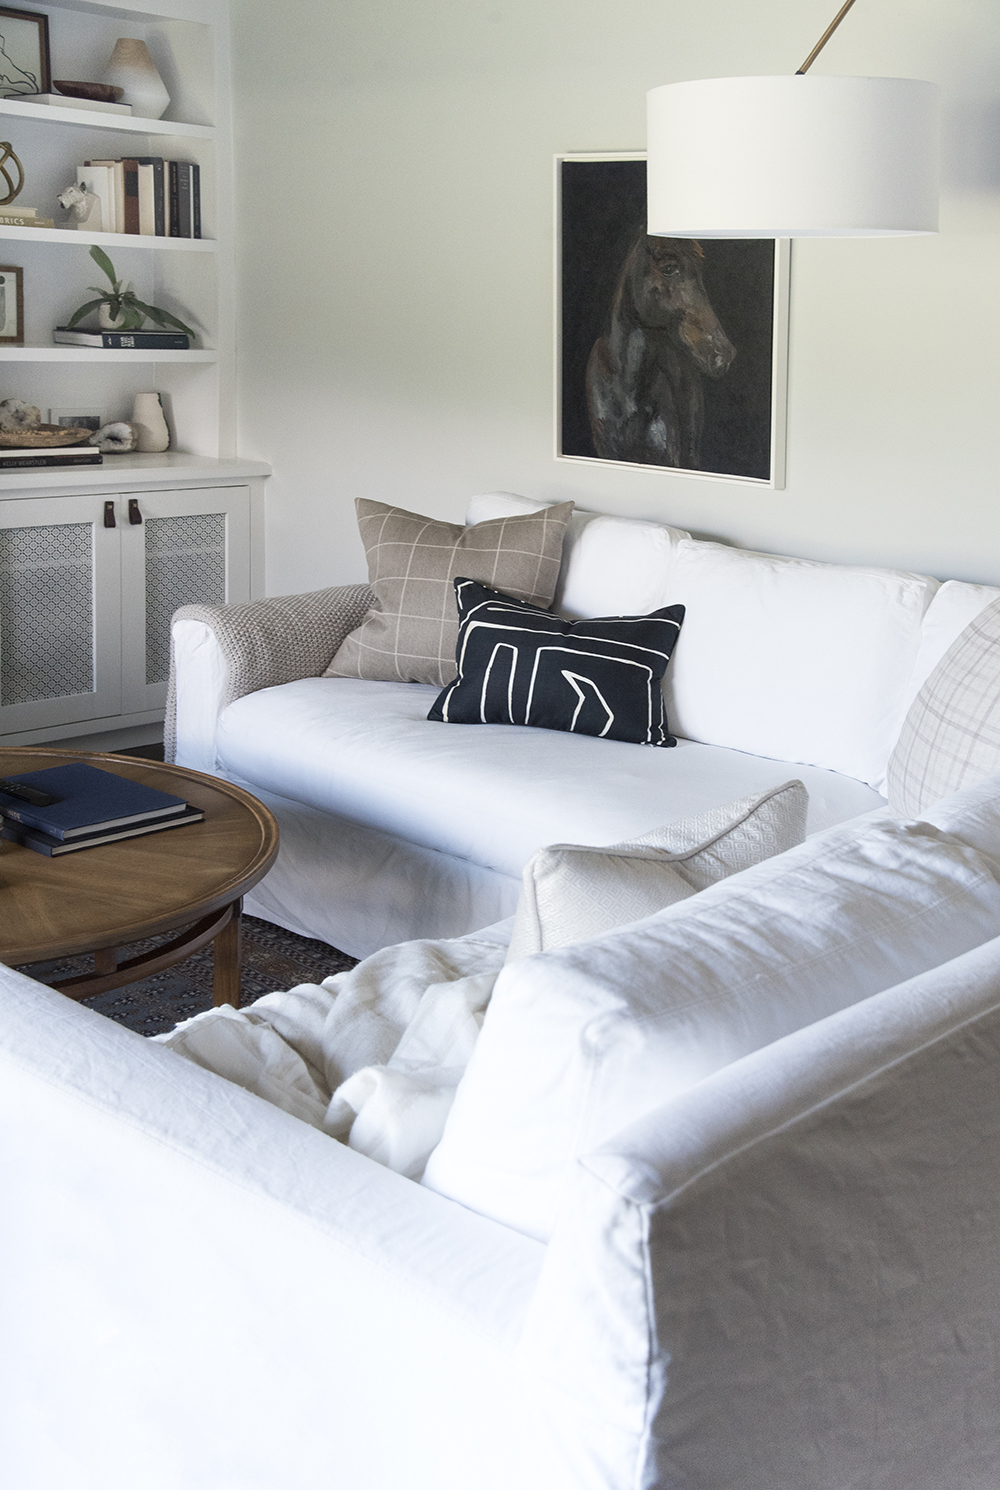 How to Pair a Sectional Sofa with the Appropriate Coffee Table - roomfortuesday.com